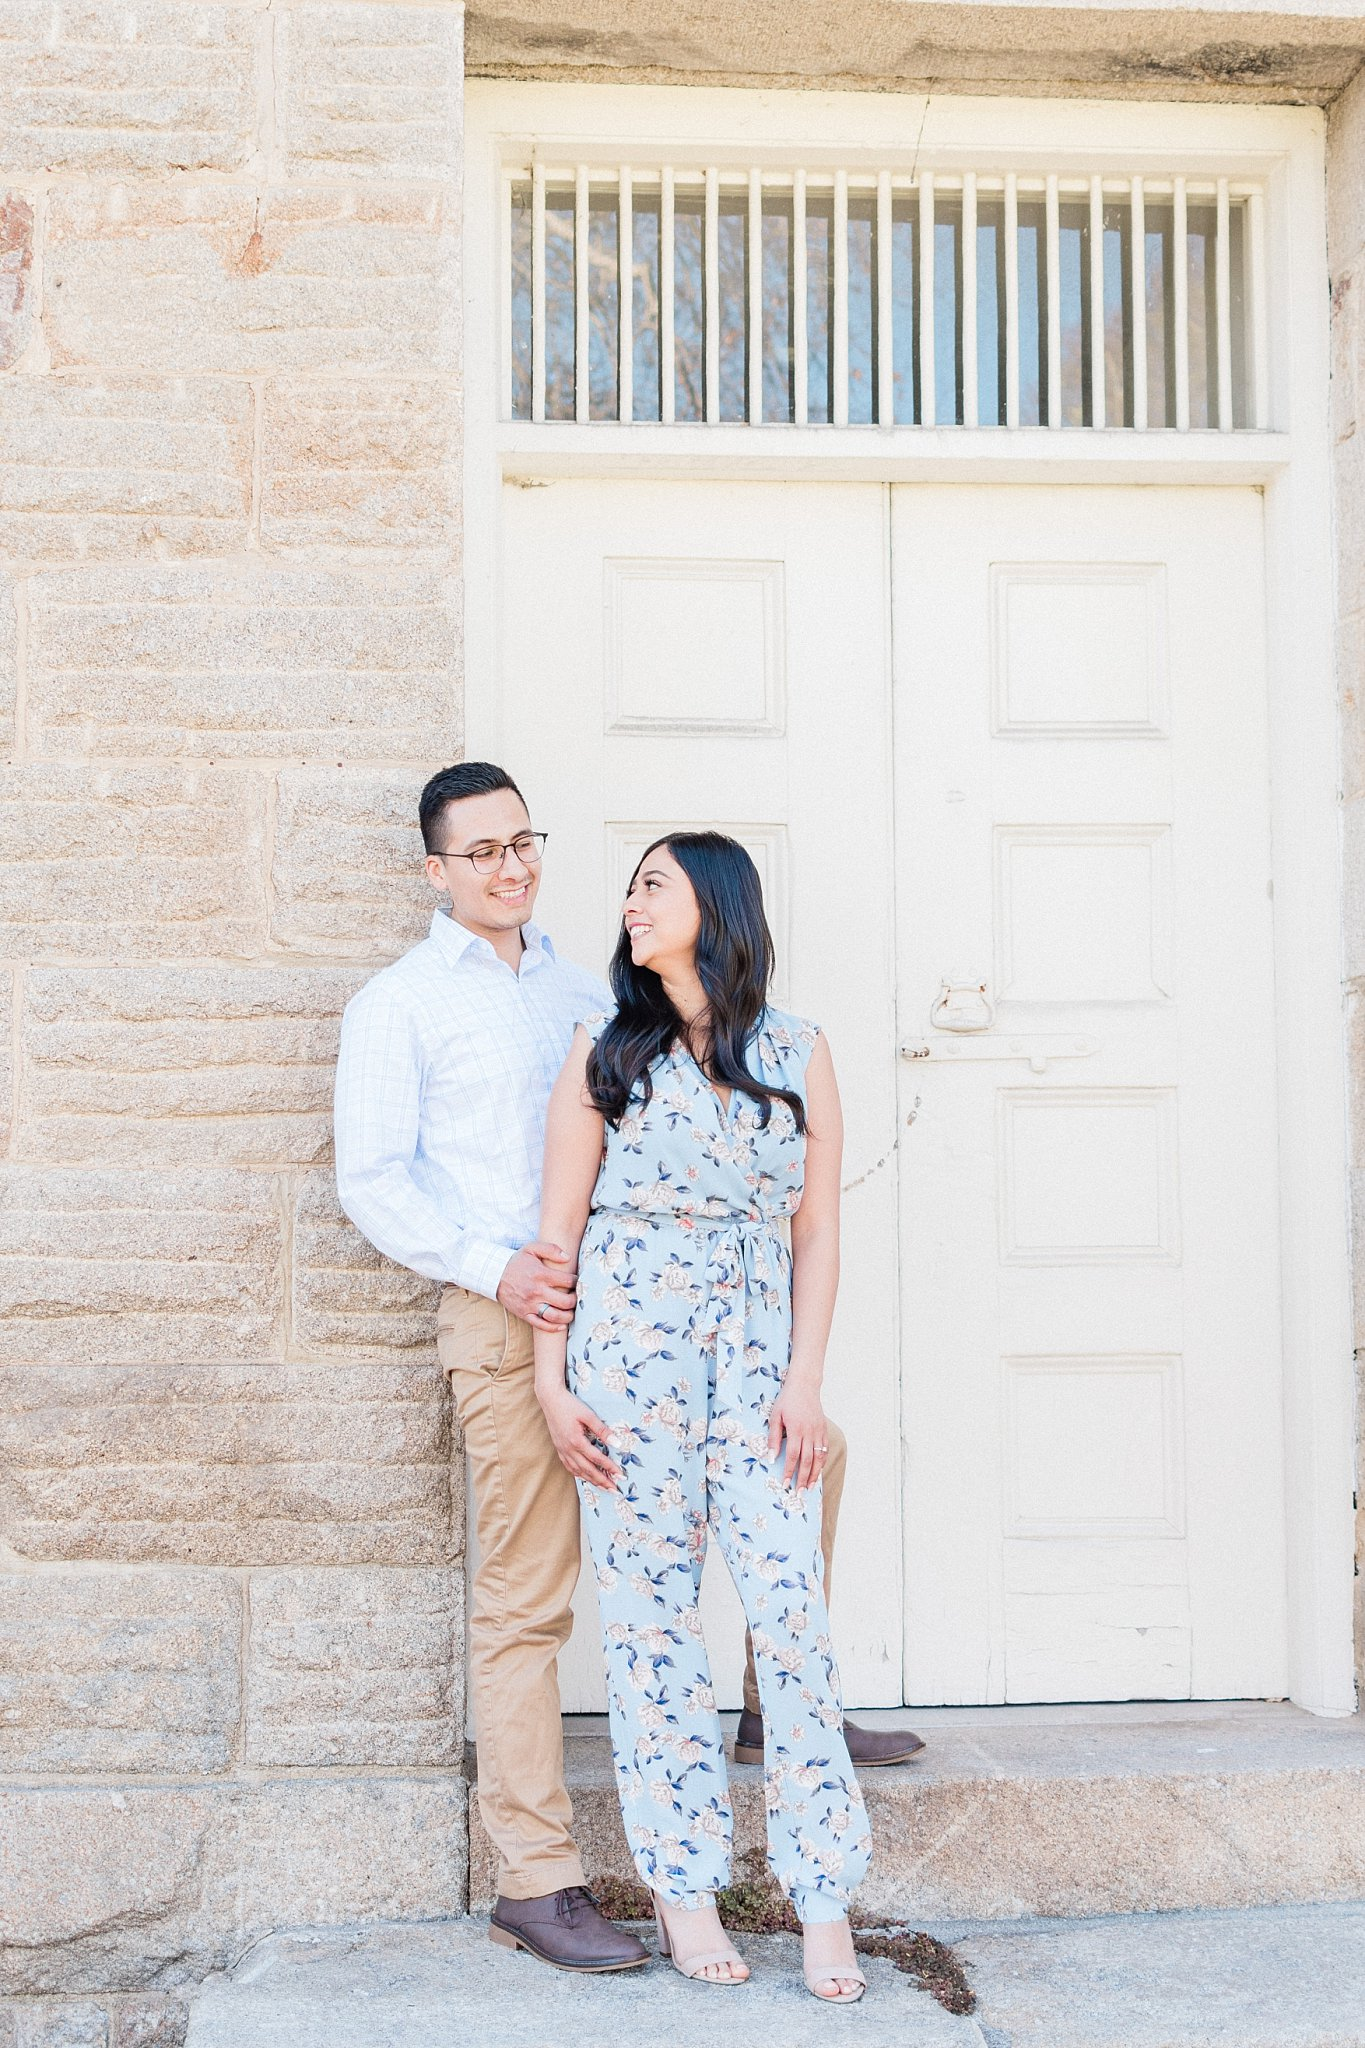 monterey-engagement-photographer-city-hall-drew-zavala-khrystal-chris_0054.jpg